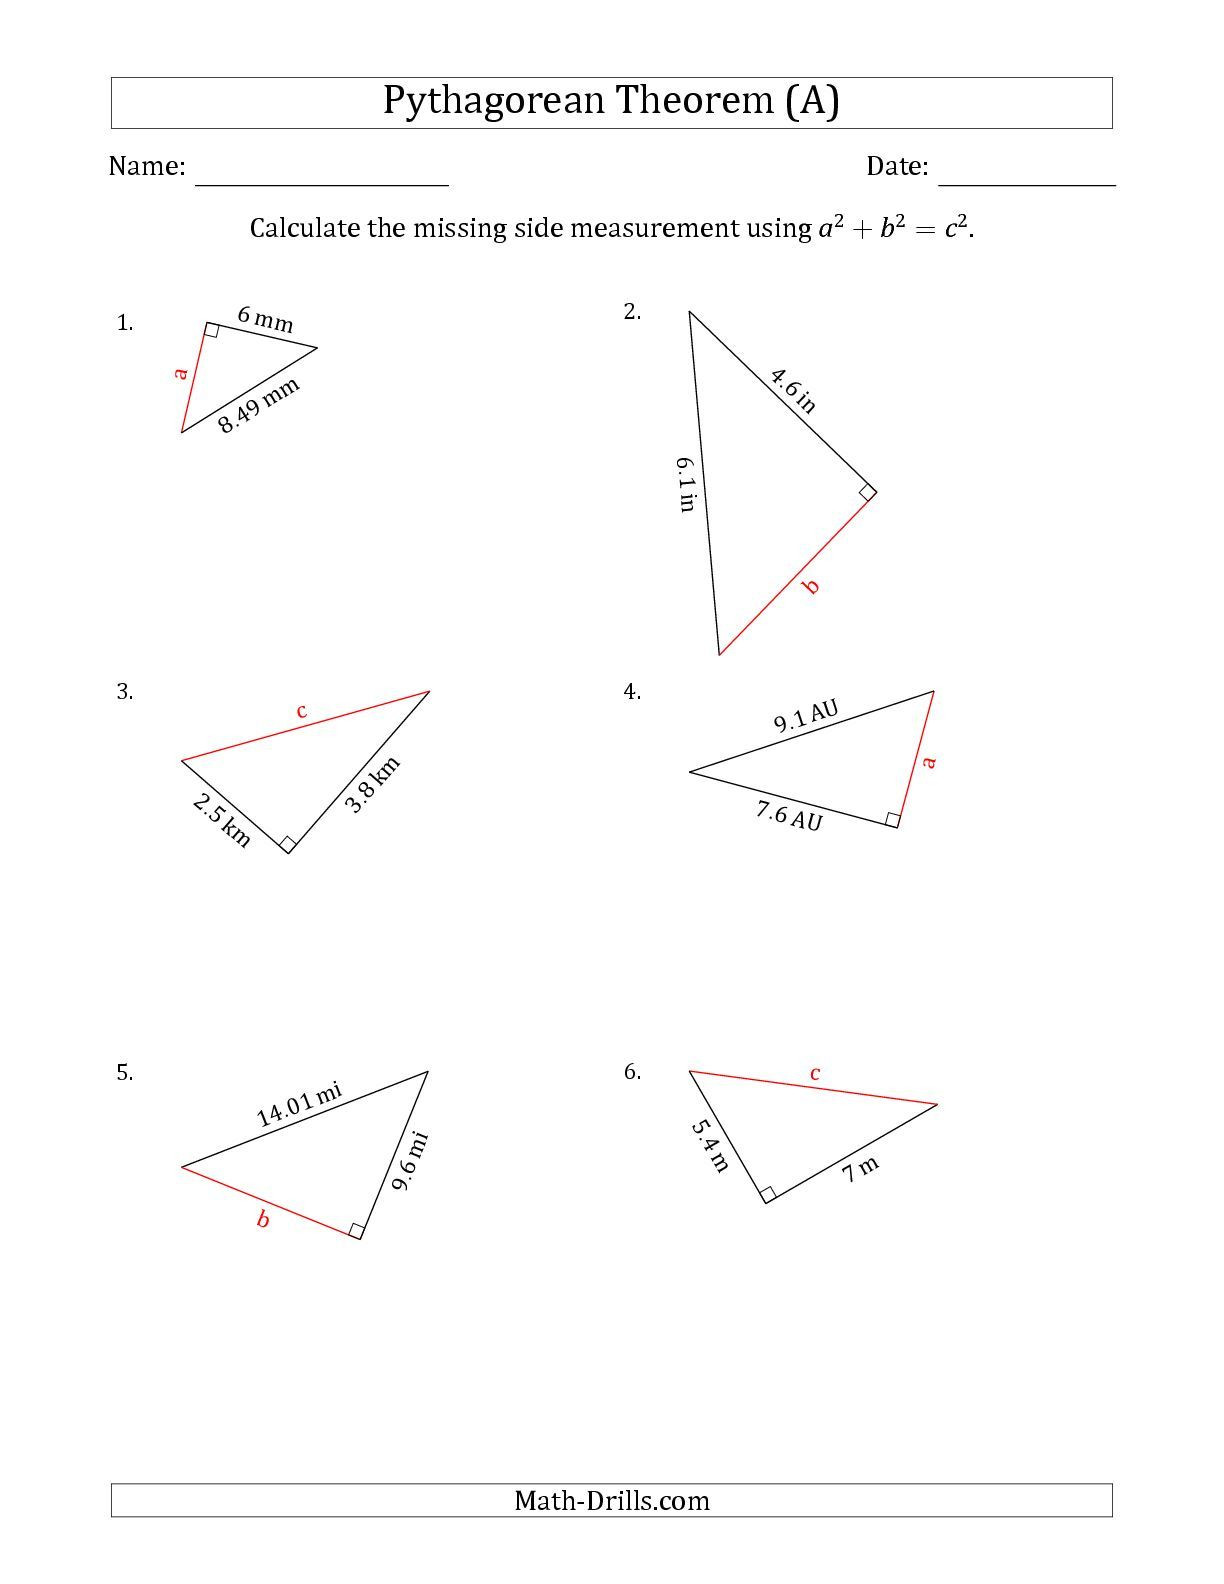 Pythagorean theorem Worksheet with Answers Pythagorean theorem Maze Worksheet